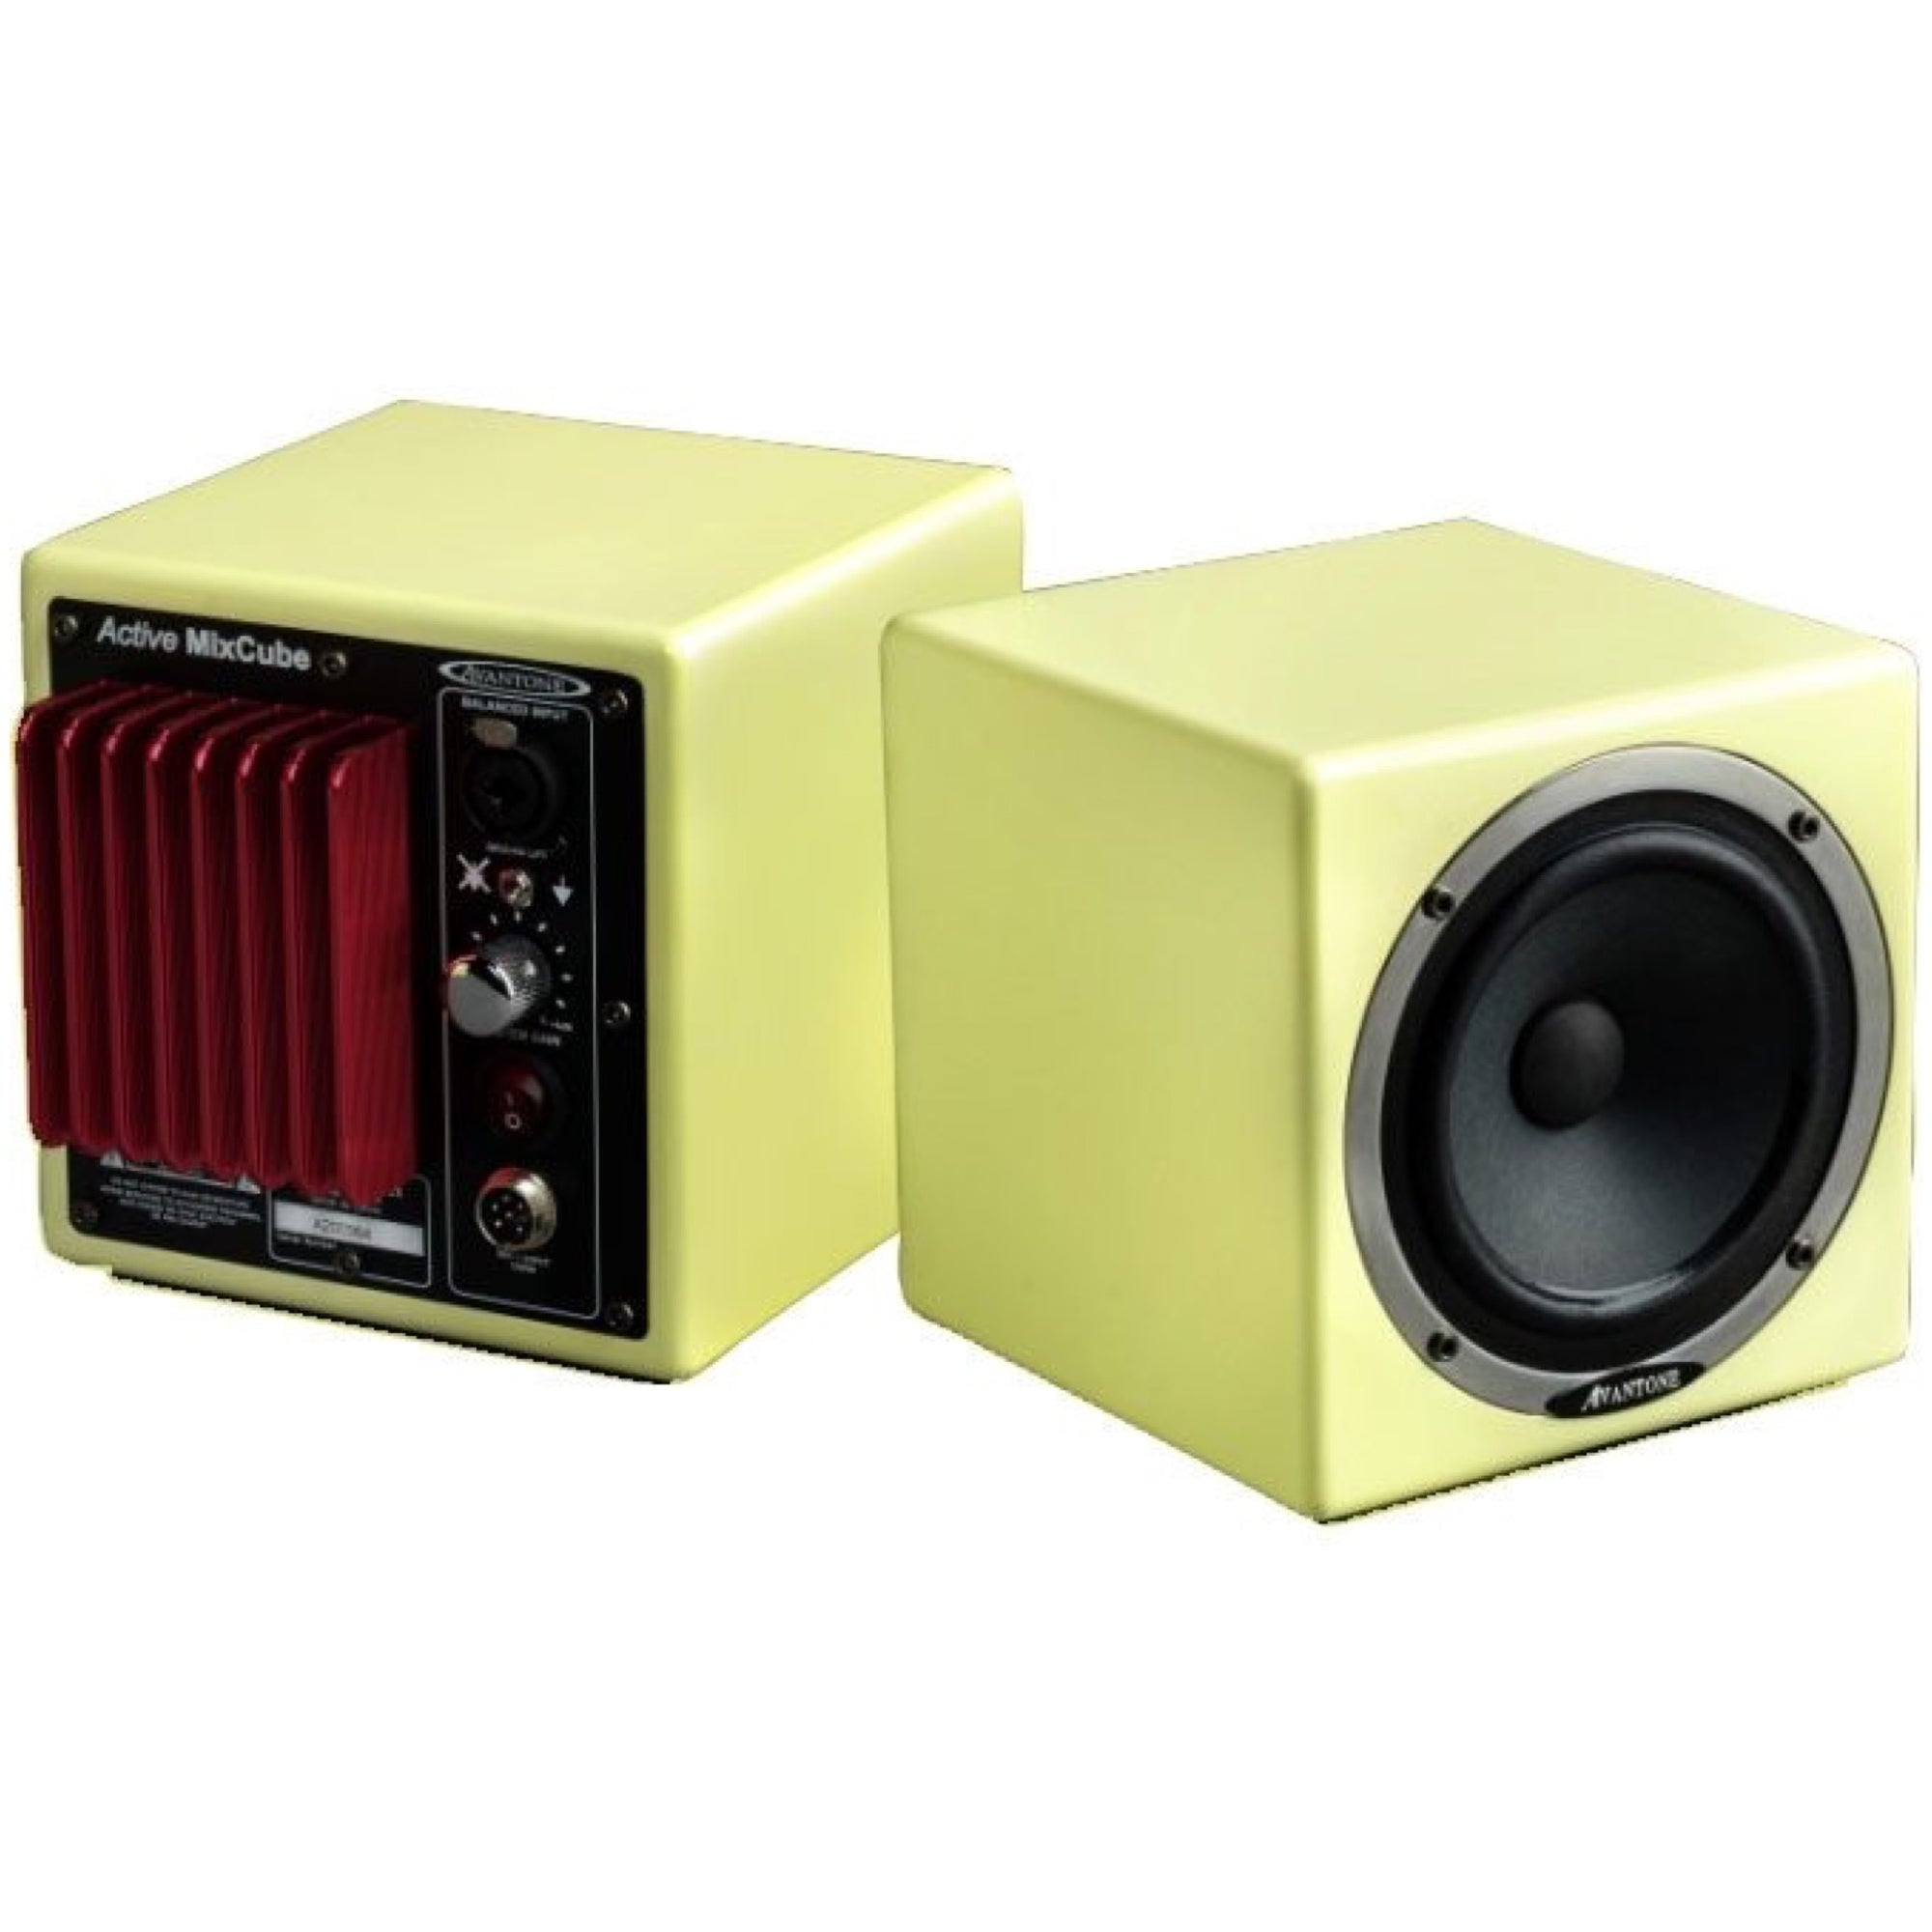 Avantone MixCubes Active Studio Monitor (60 Watts, 1x5.25 Inch), Retro Cream, Pair